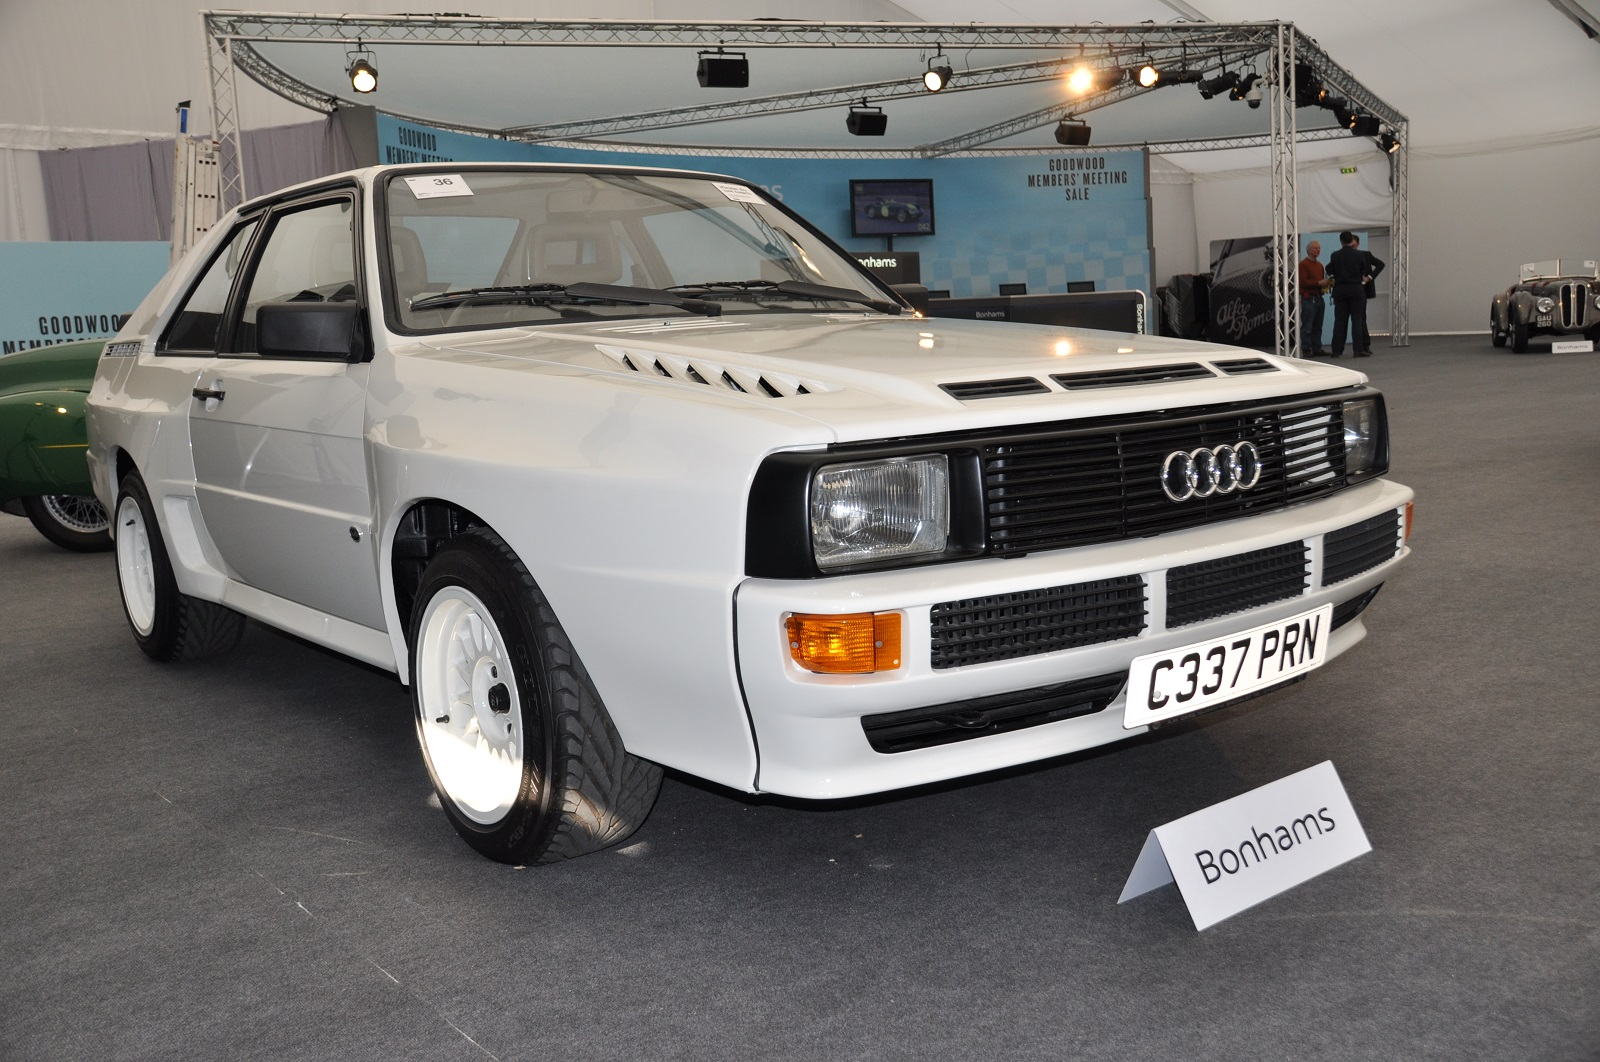 audi quattro 395 000 record at bonhams 39 goodwood sale gtspirit. Black Bedroom Furniture Sets. Home Design Ideas